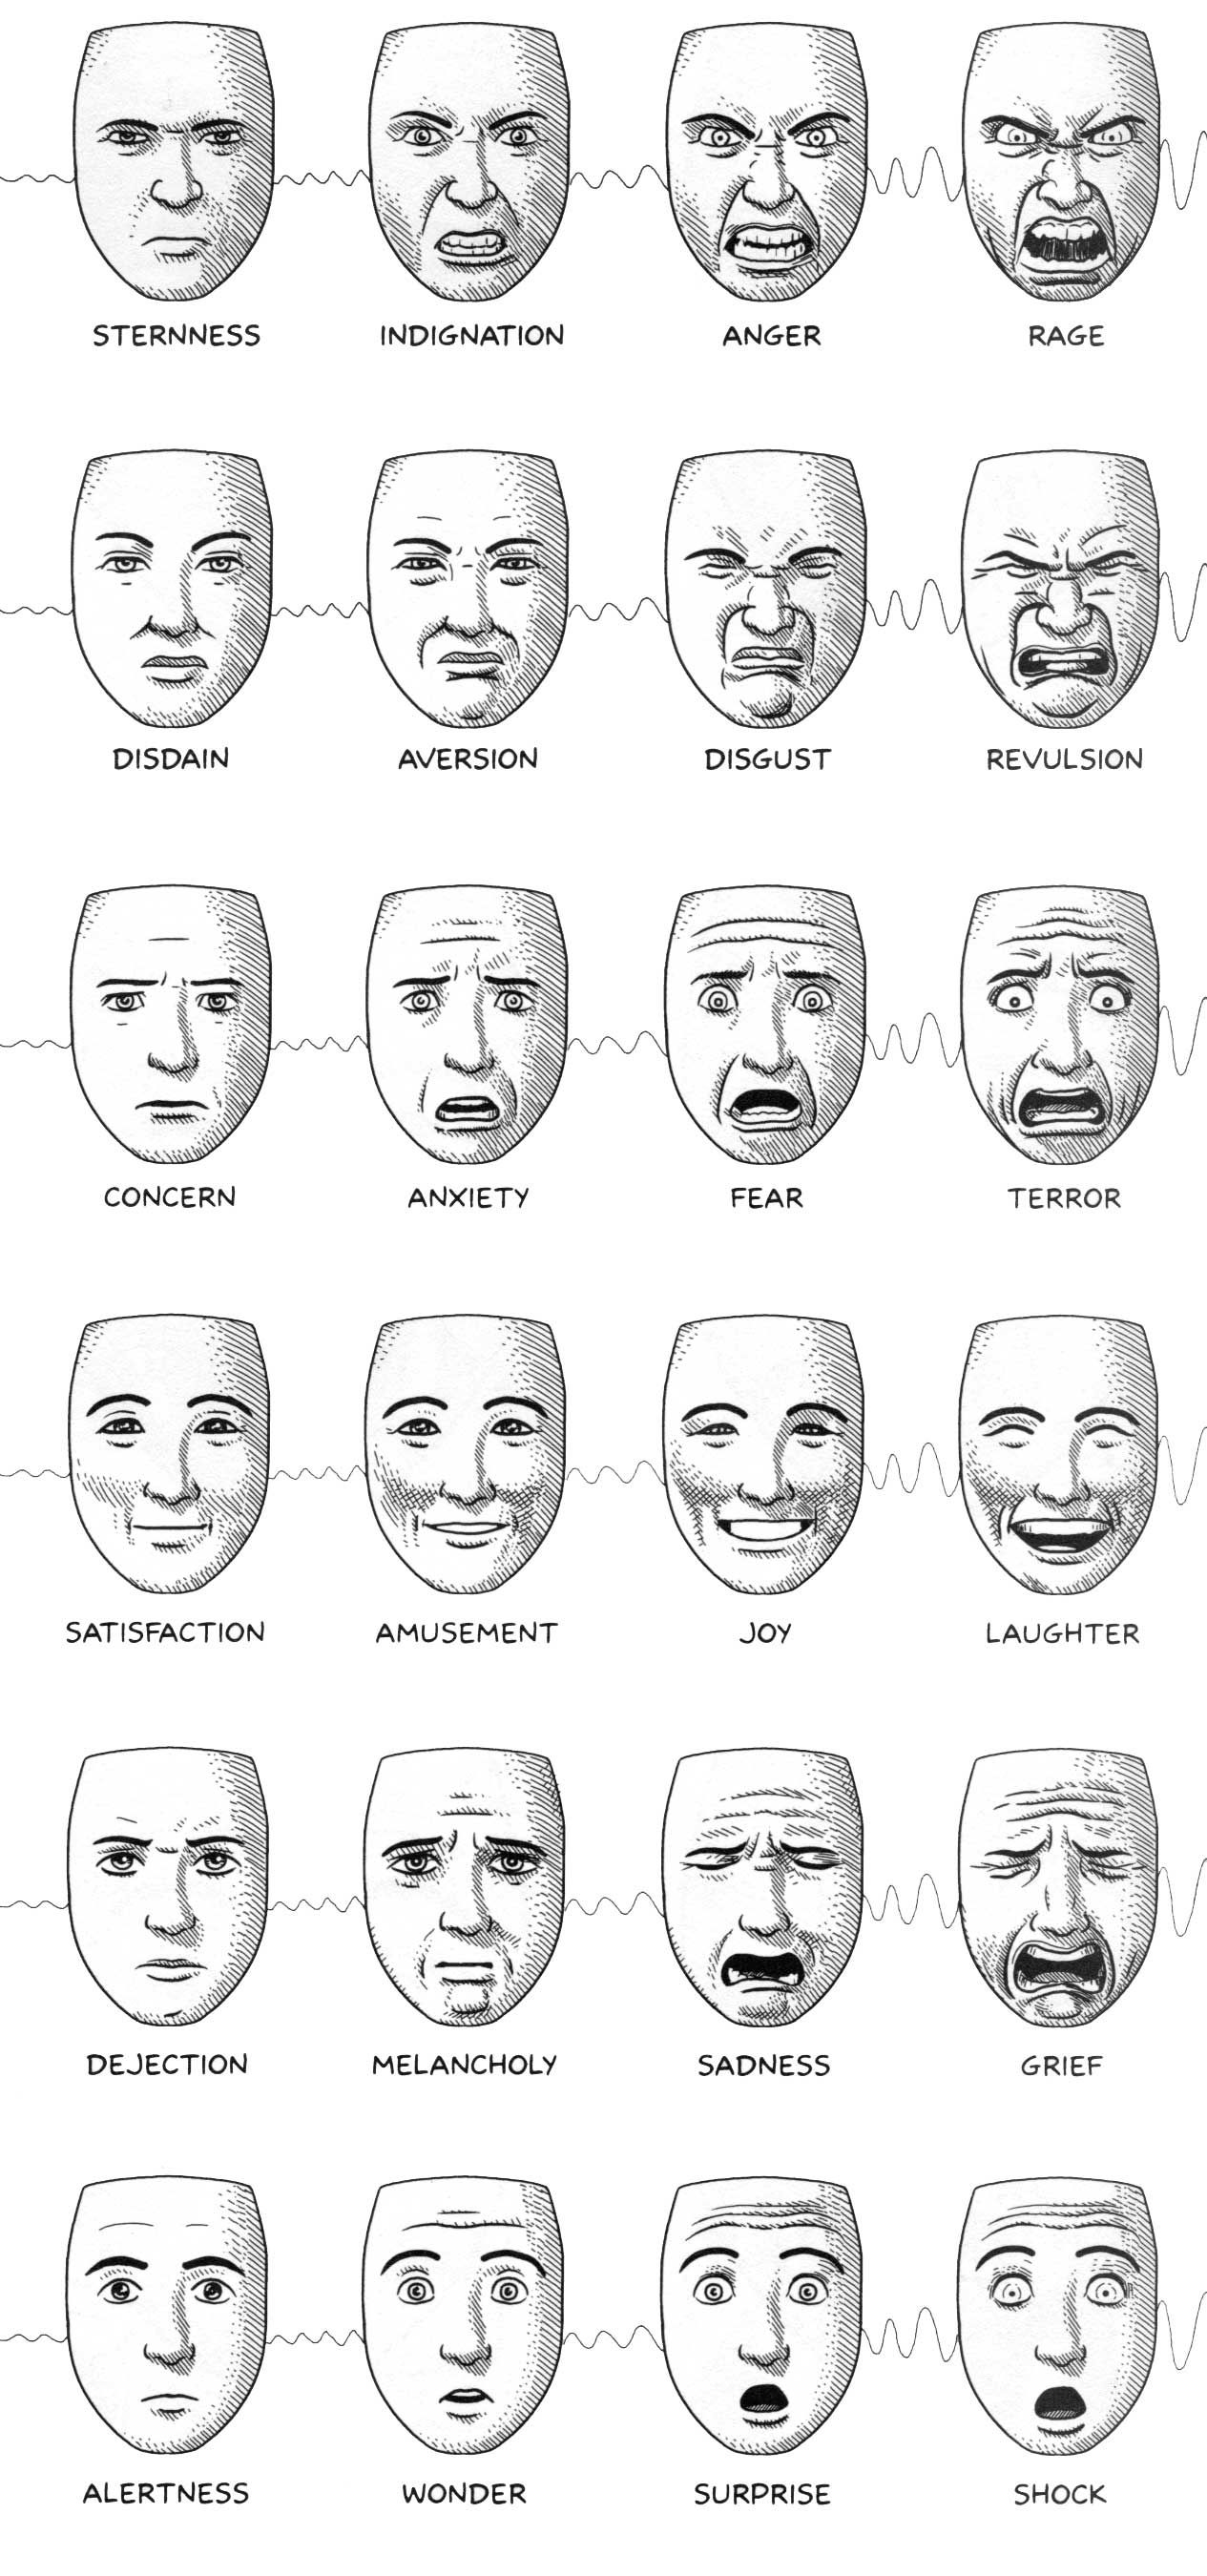 Pin by Terry Castle on Black and White | Pinterest | Draw, Facial ...